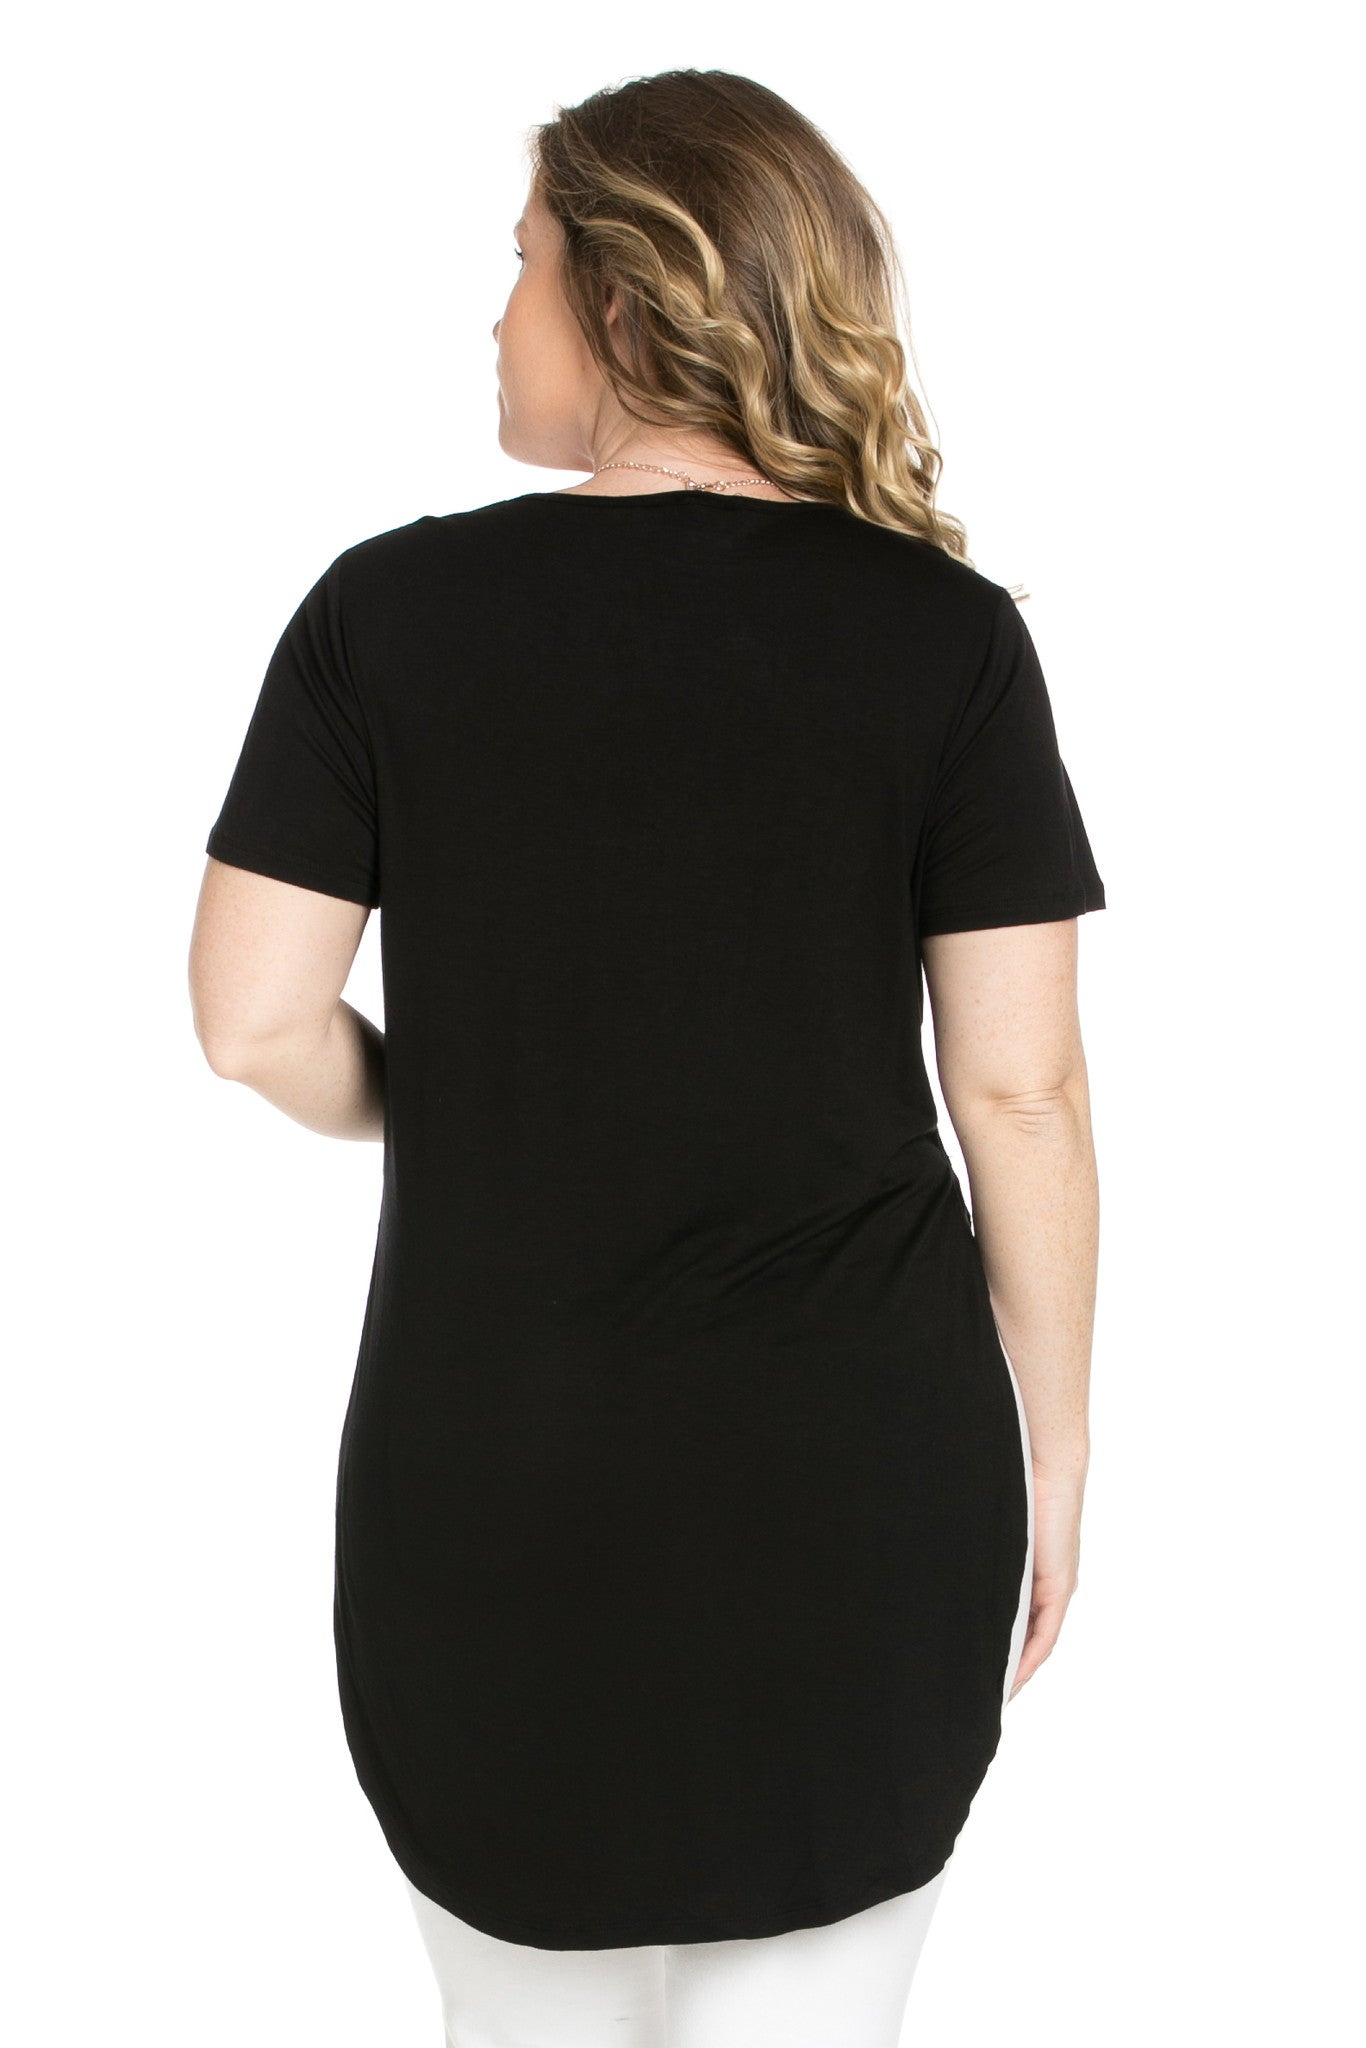 Black Plus Size High-low Scoop Neck Shirt - Blouses - My Yuccie - 8